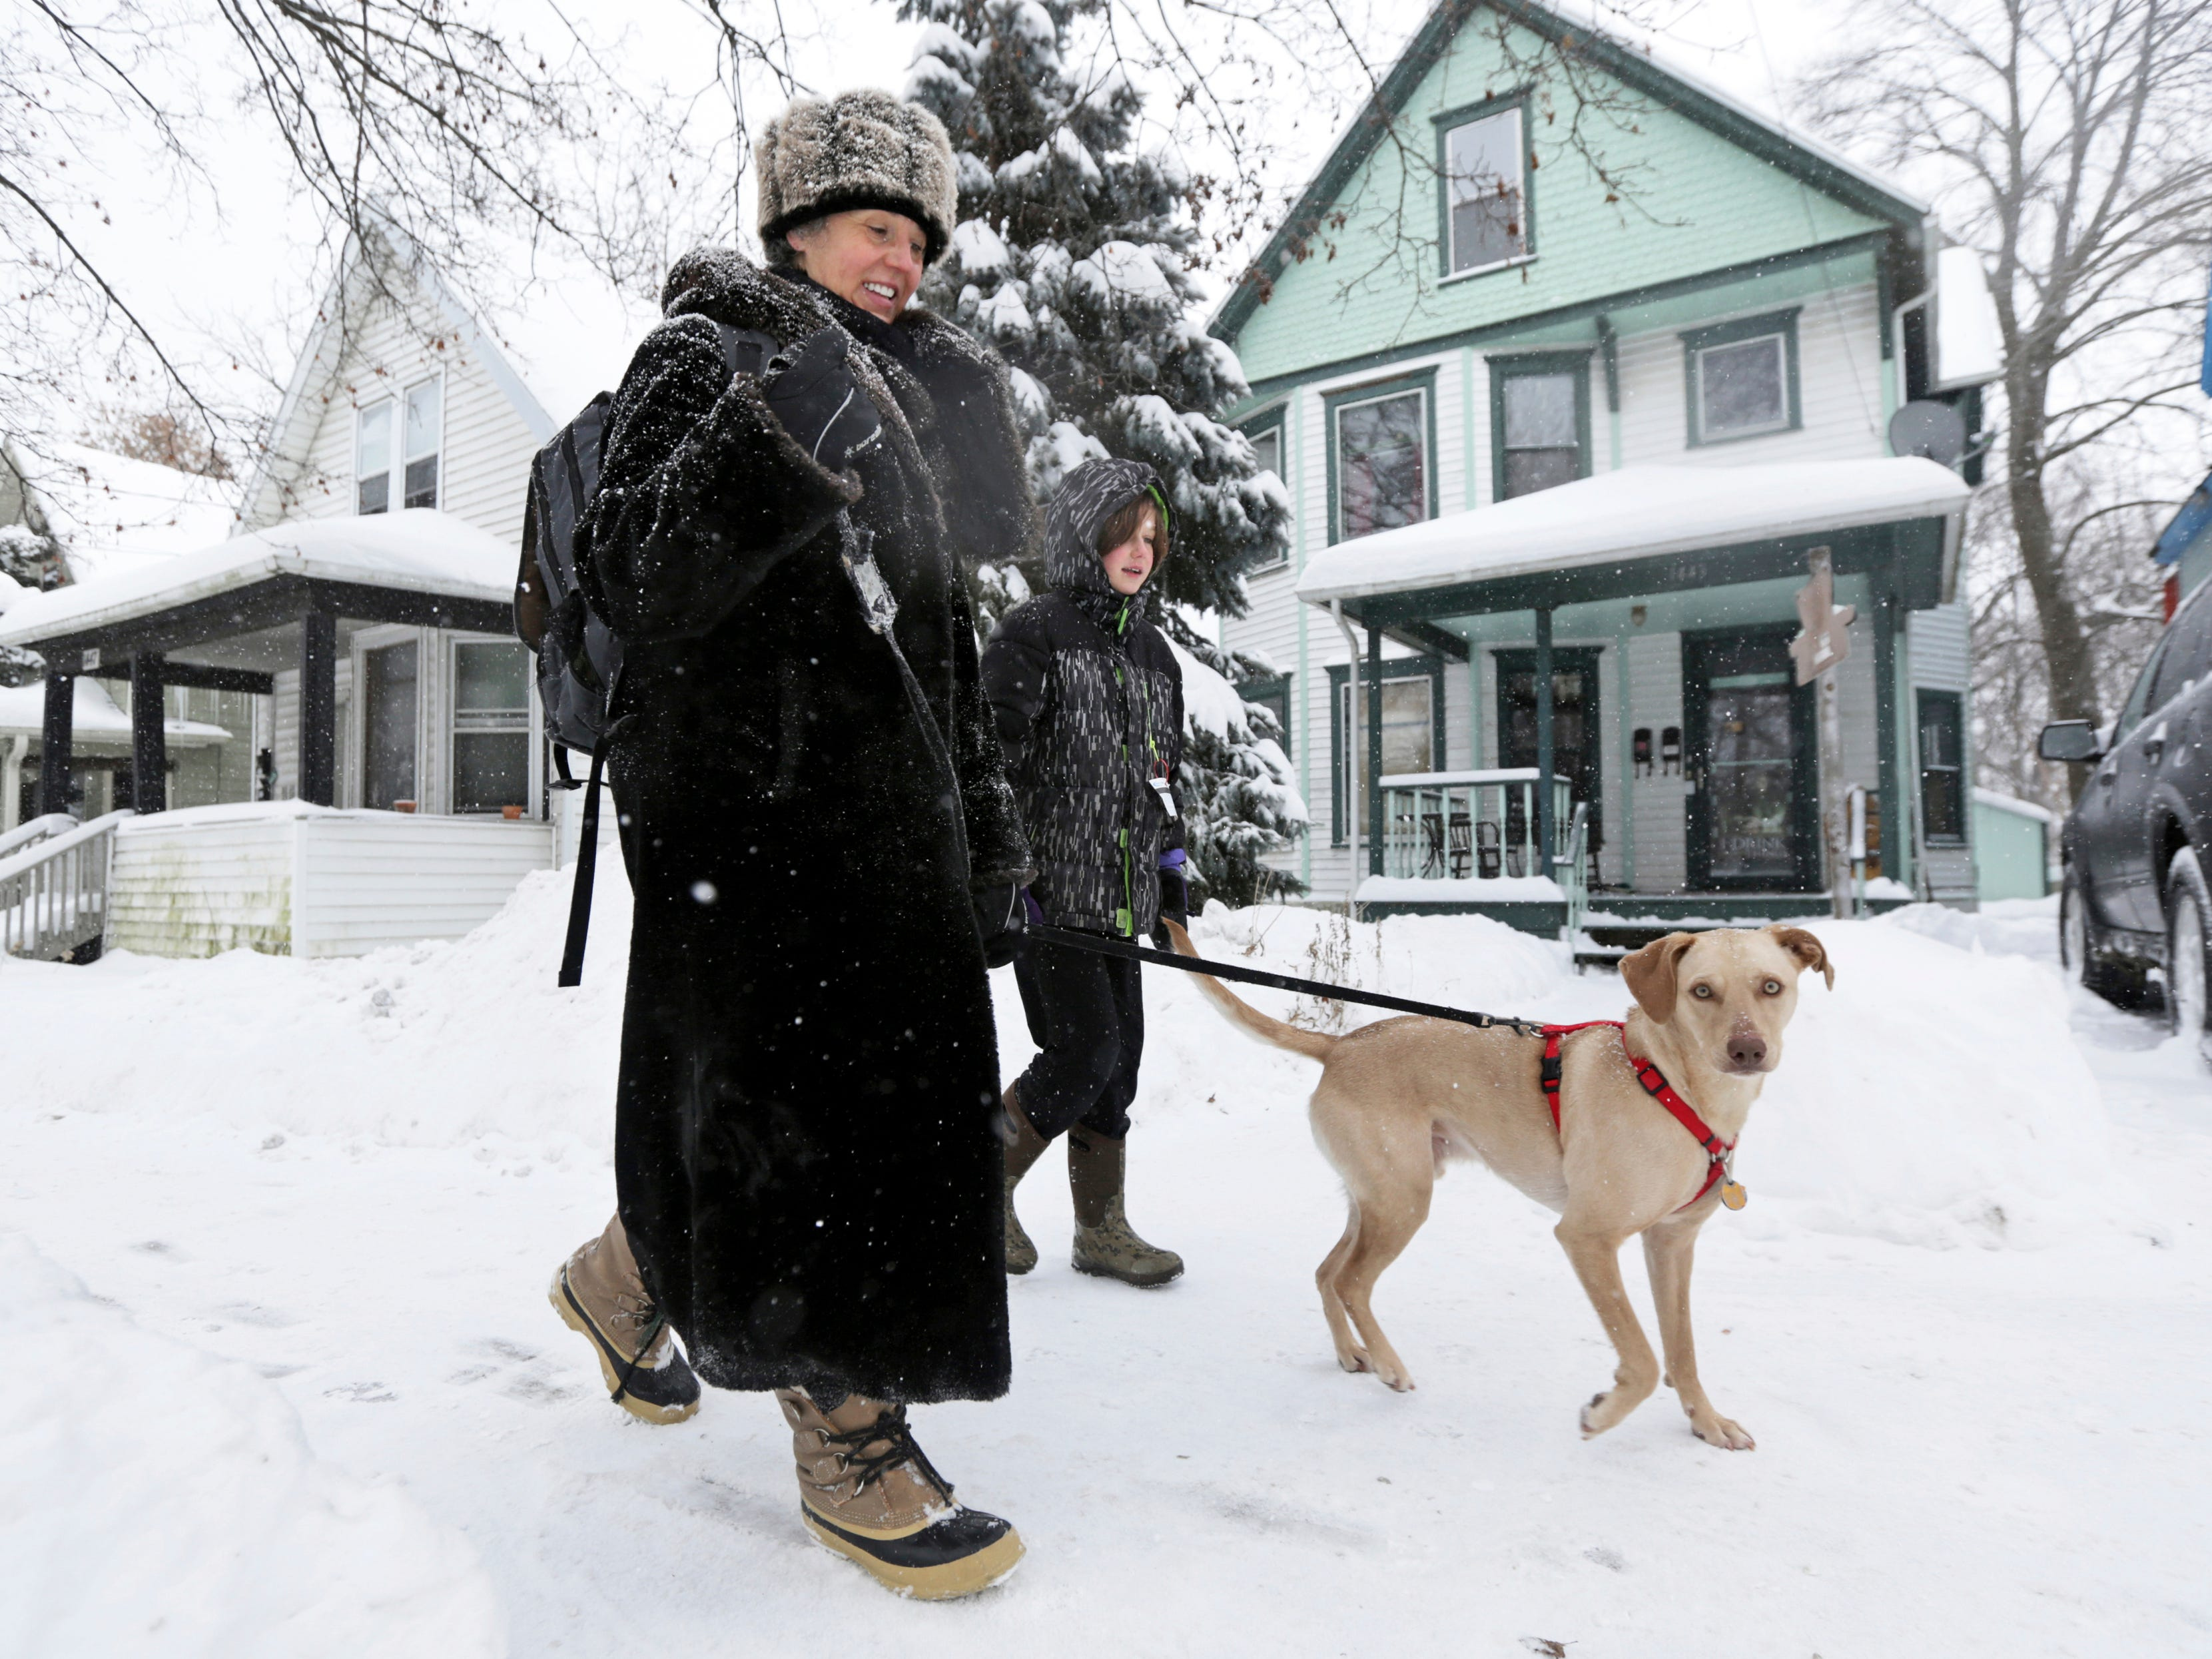 Marlisa Kopenski Condon walks to work with her son, Rex Condon, 10, and their dog, Coconut, during a winter storm in Madison, Wis. on, Jan. 28, 2019.